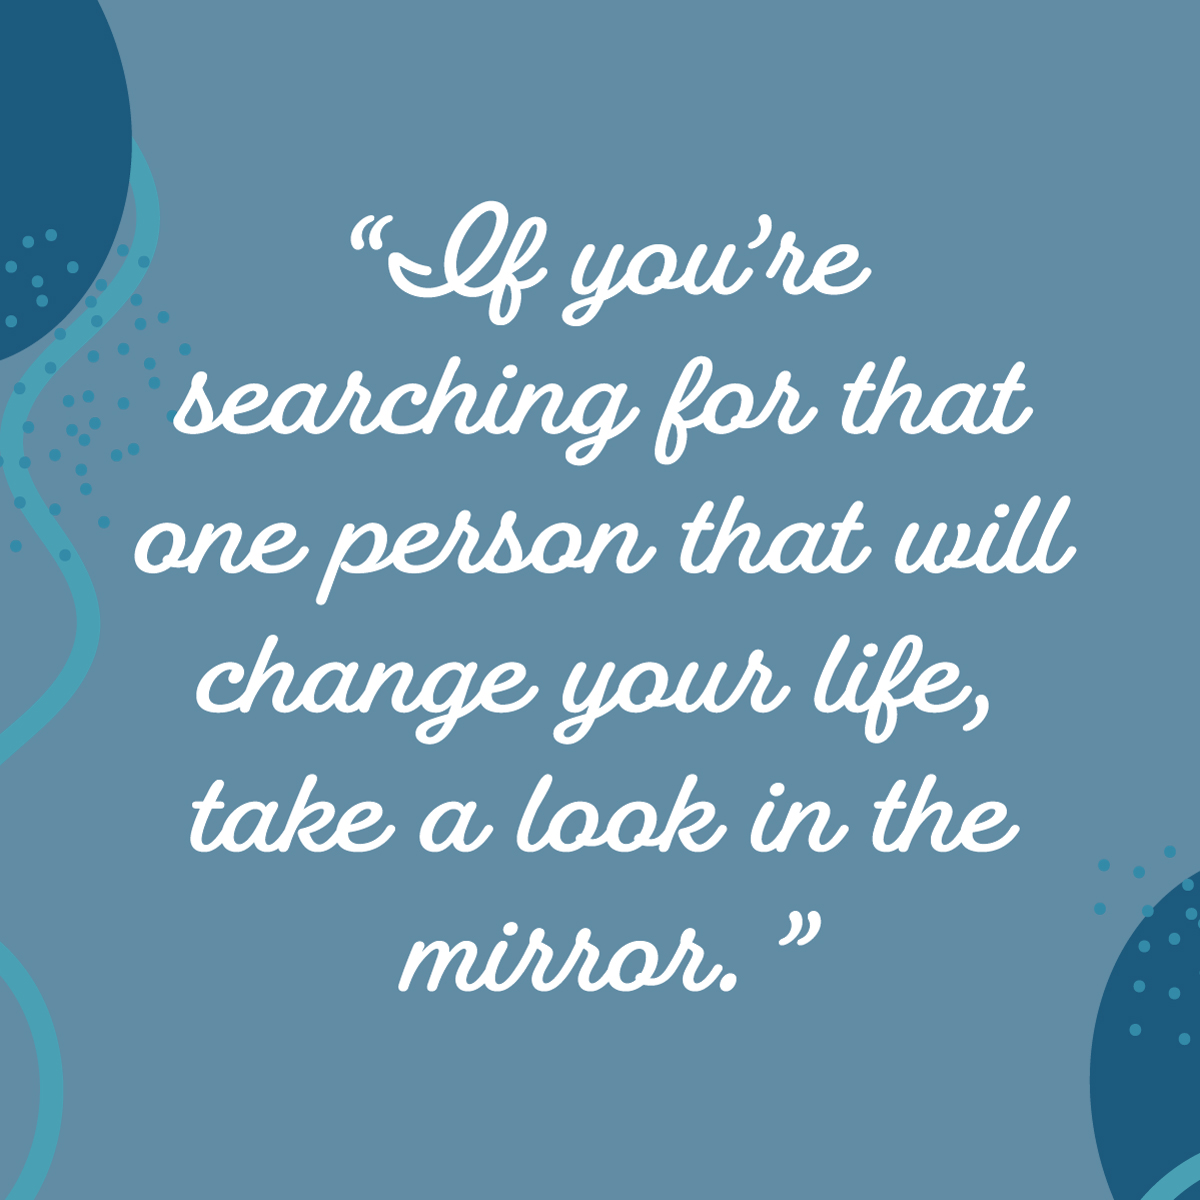 If you're searching for that one person that will change your life, take a look in the mirror